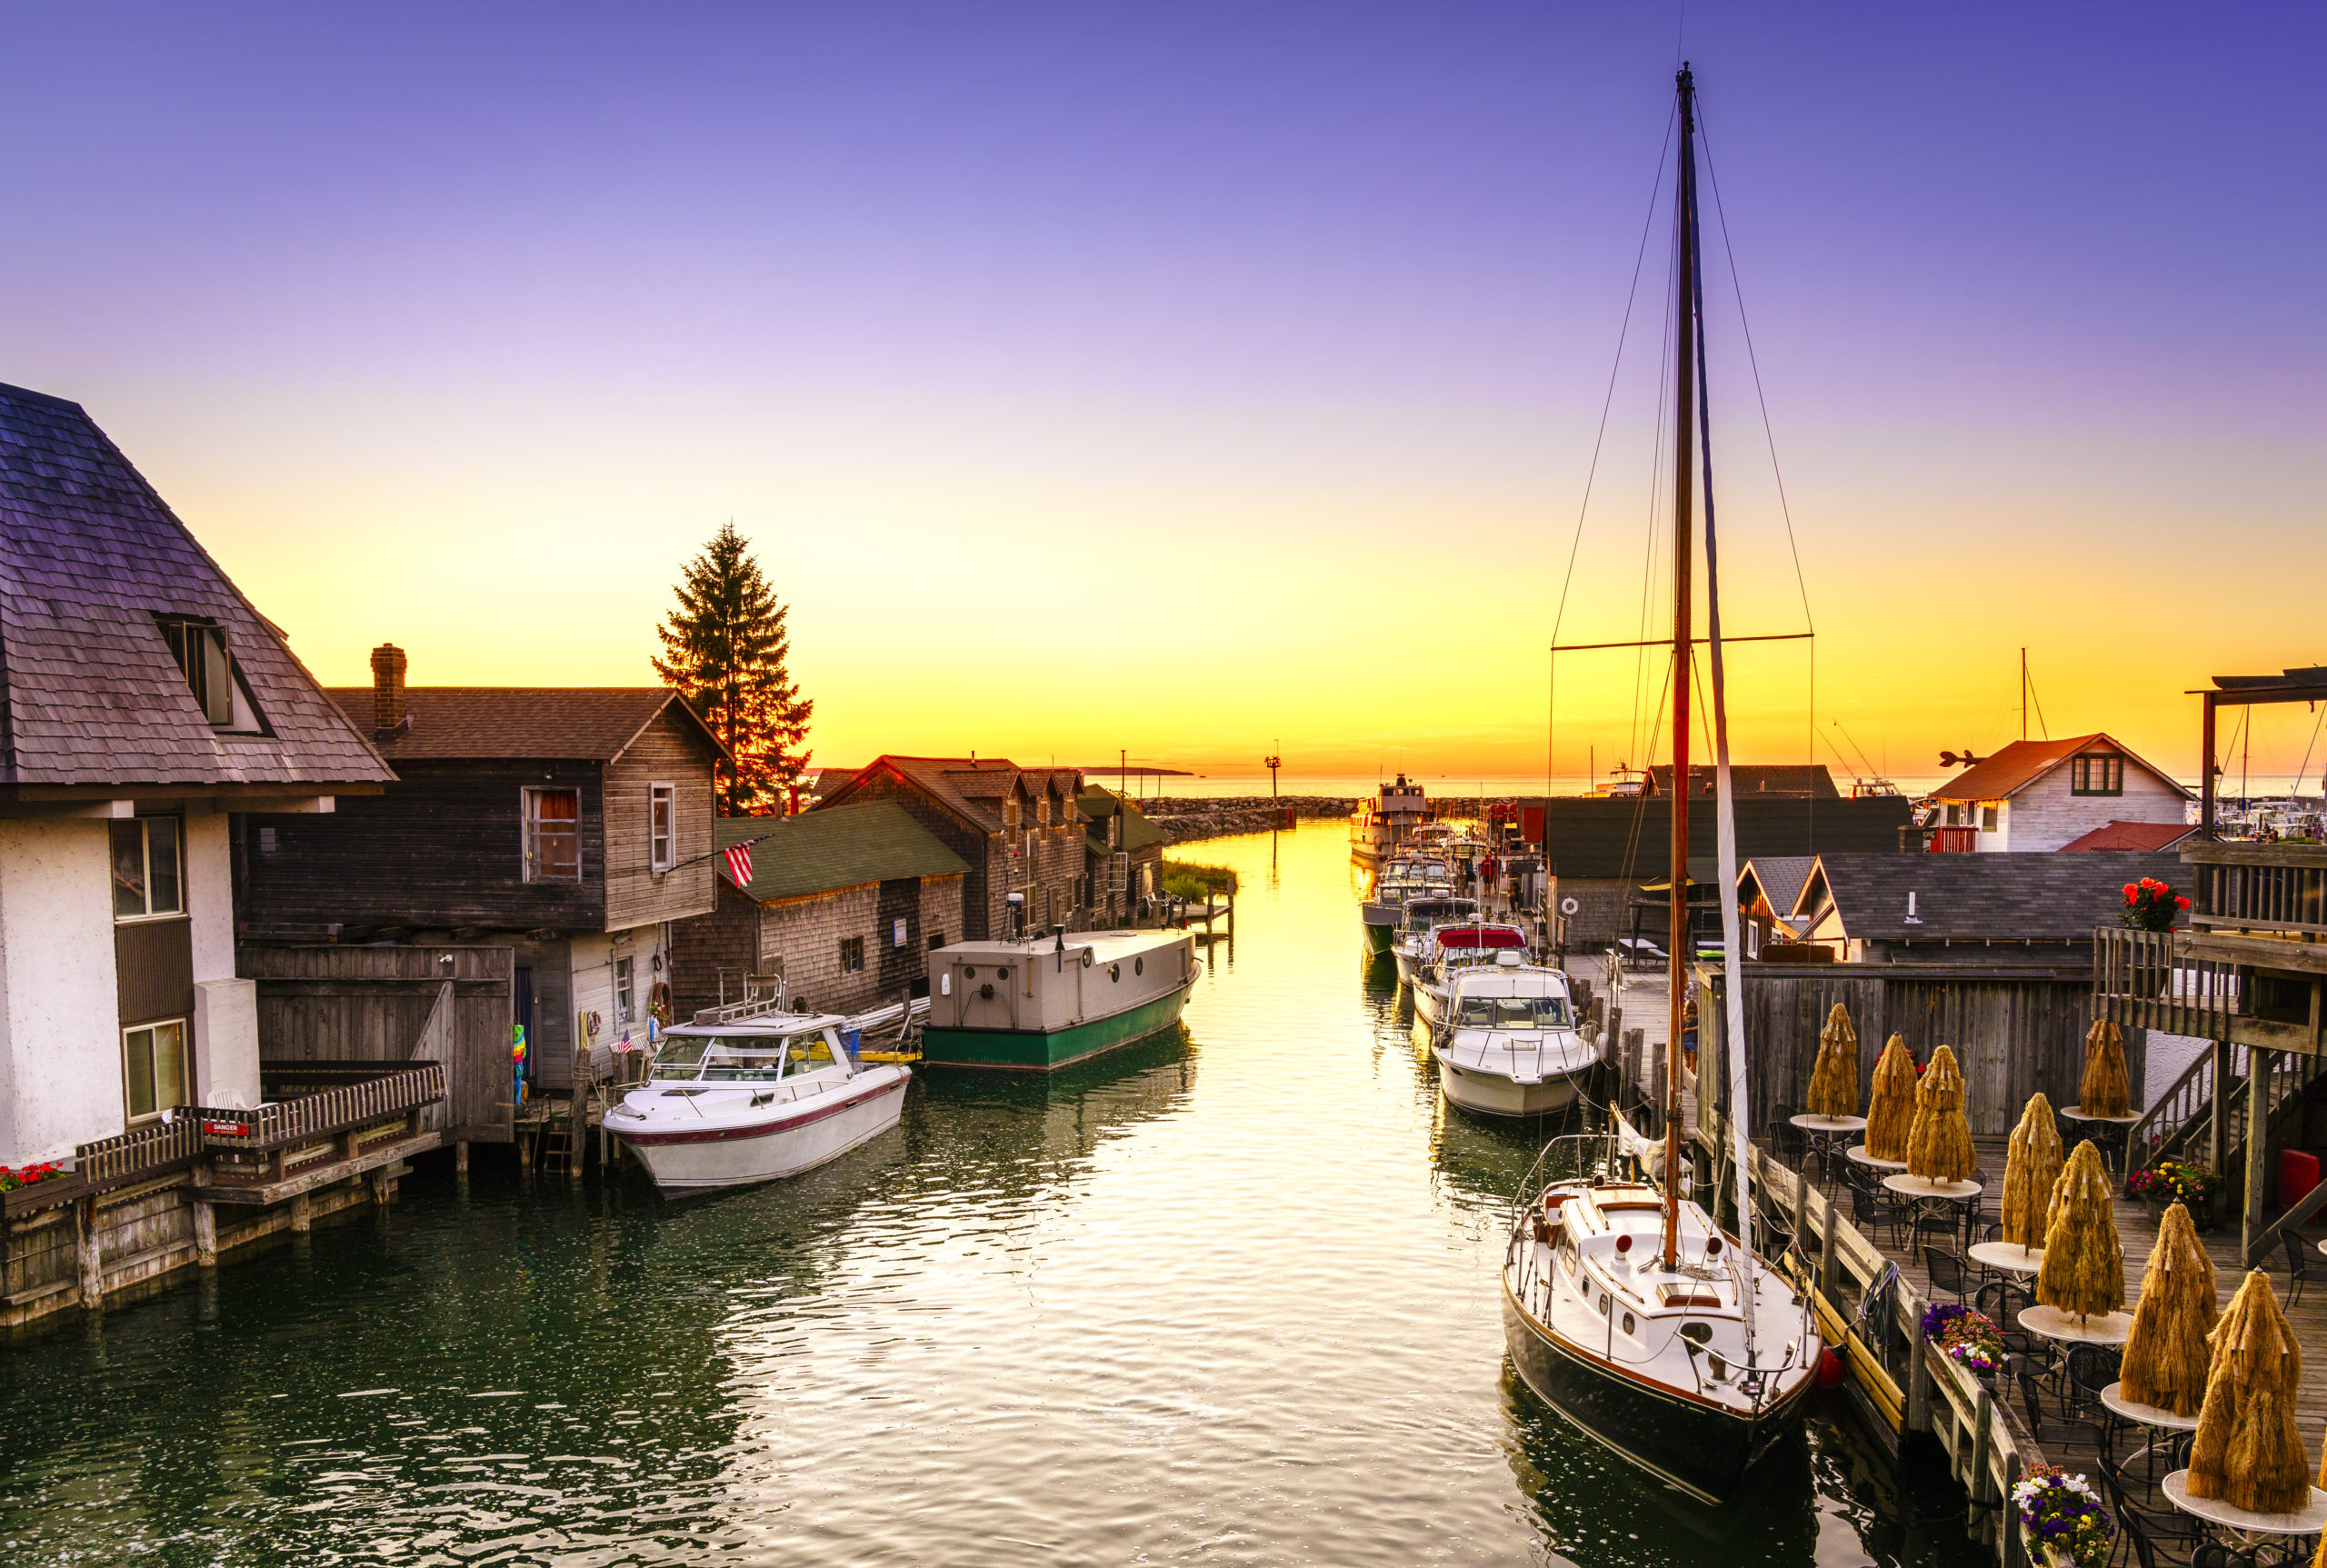 View of the sunset over Fishtown docks and boats on Lake Michigan in Leland, Michigan.